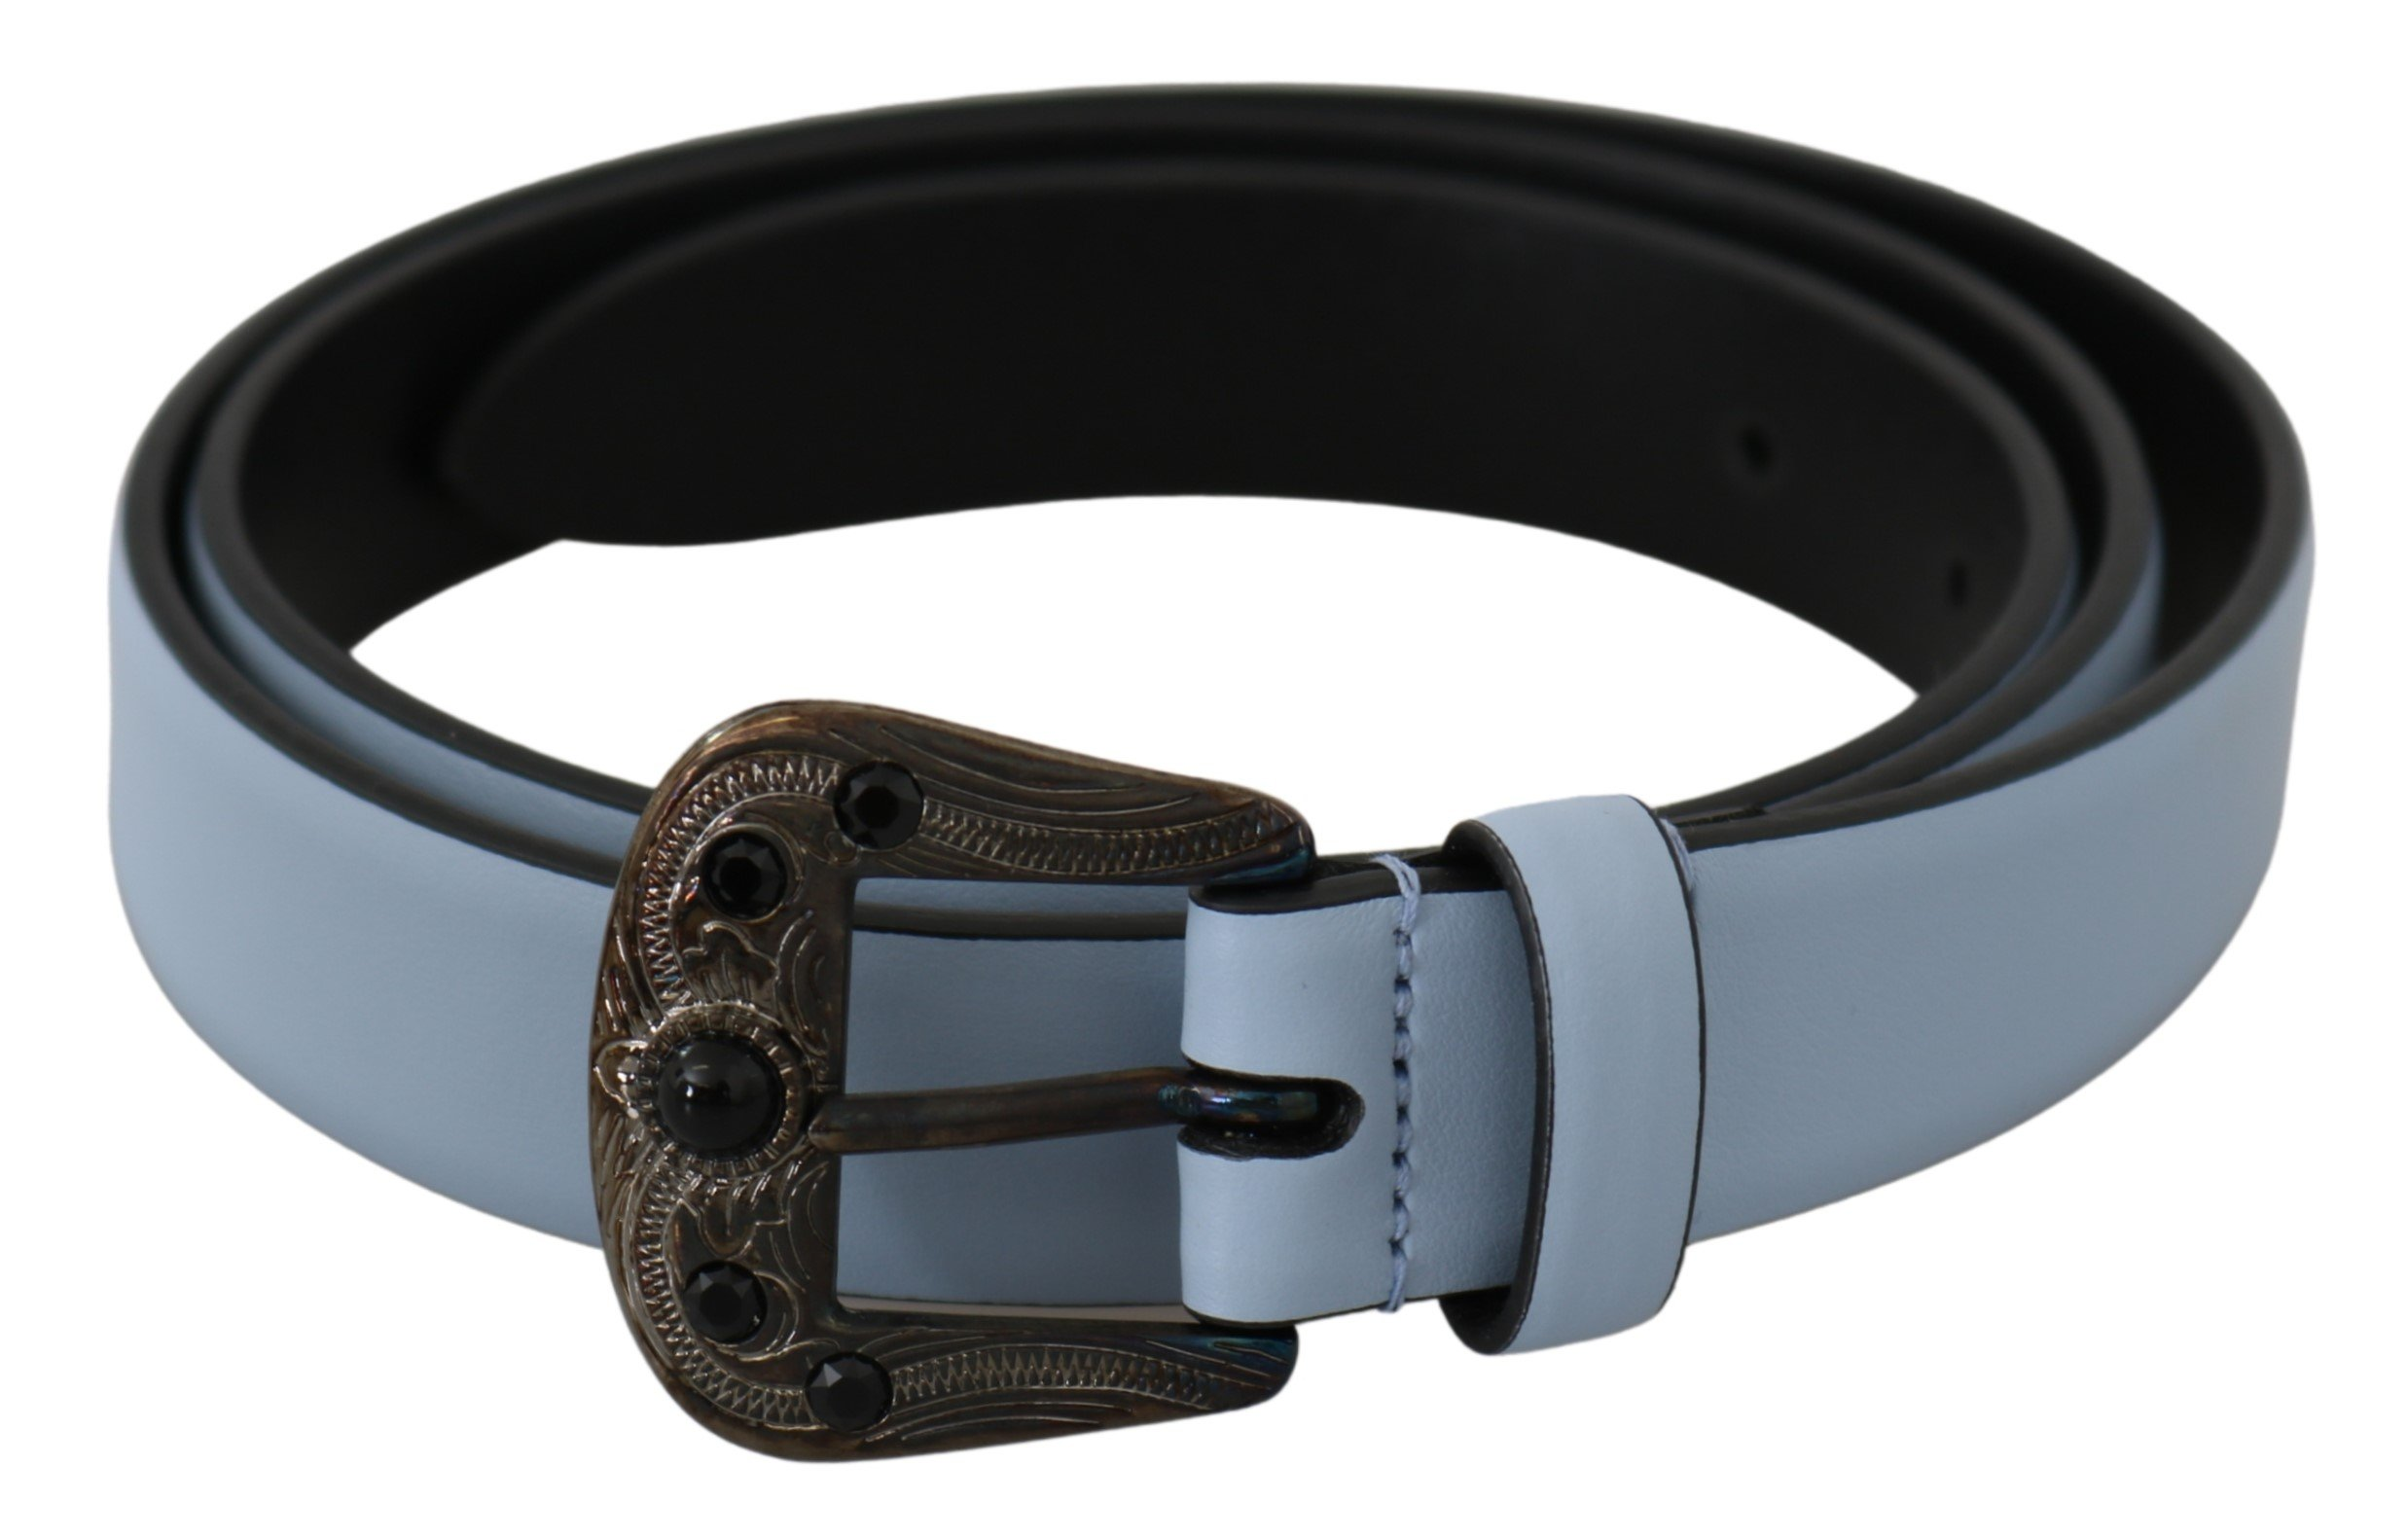 Blue Black Crystal Baroque Buckle Leather Belt - 90 cm / 36 Inches